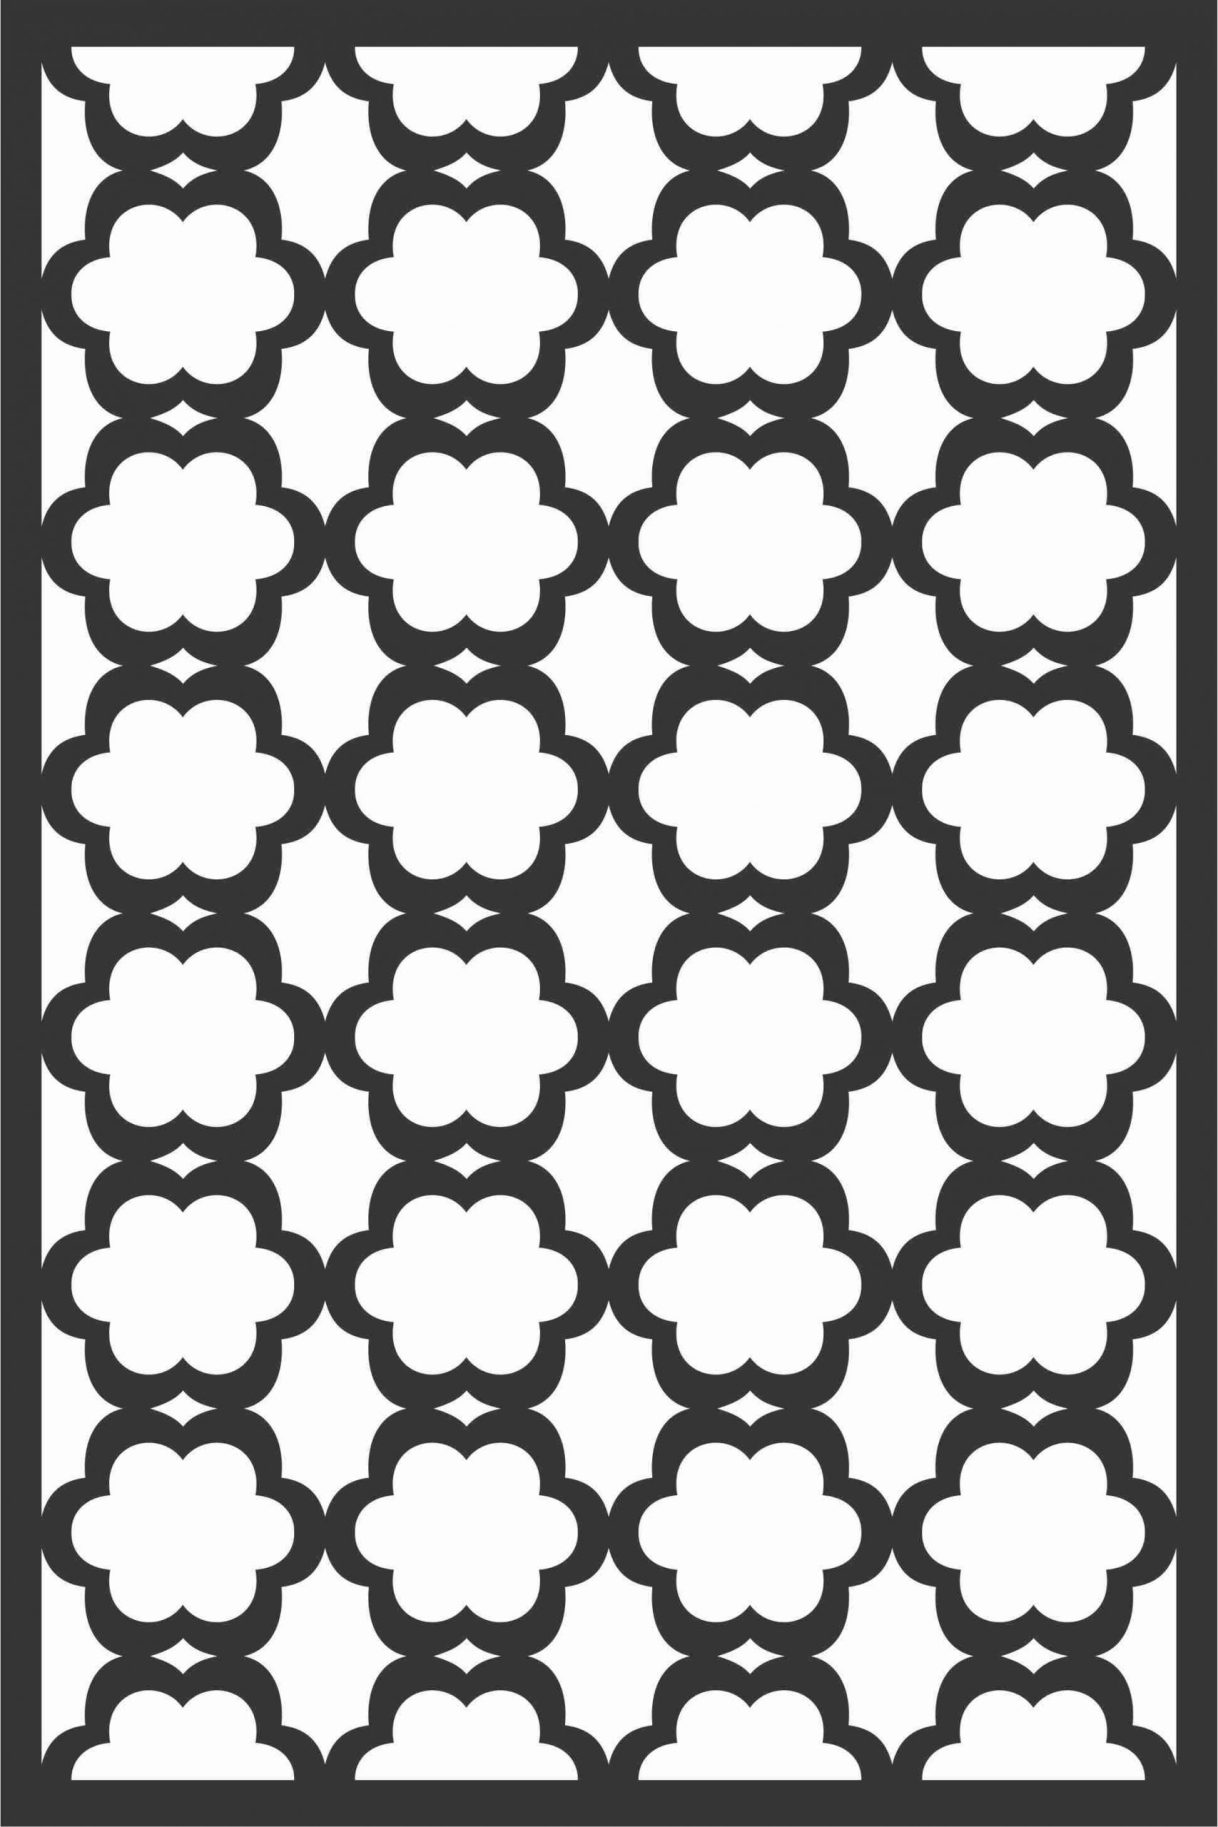 Floral Screen Patterns Design 71 Free DXF File